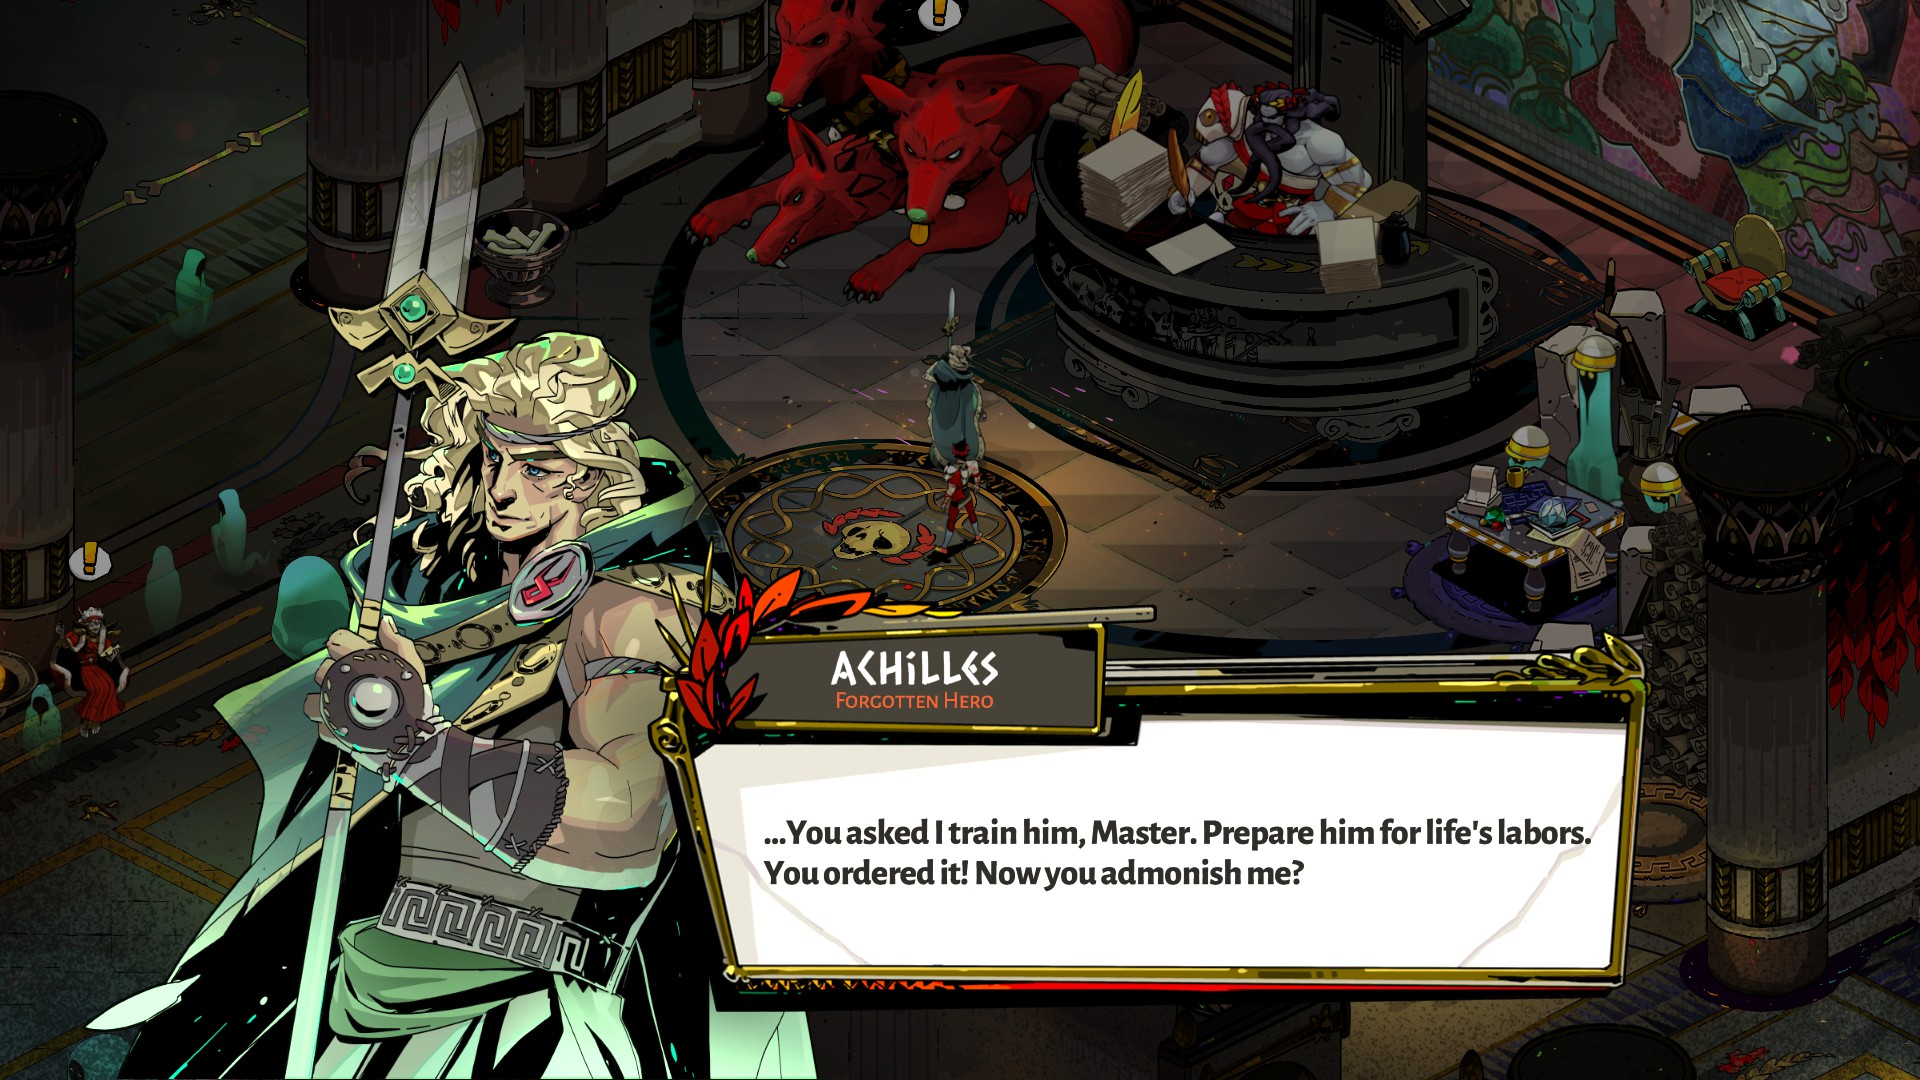 Achilles from Hades, talking to Hades.